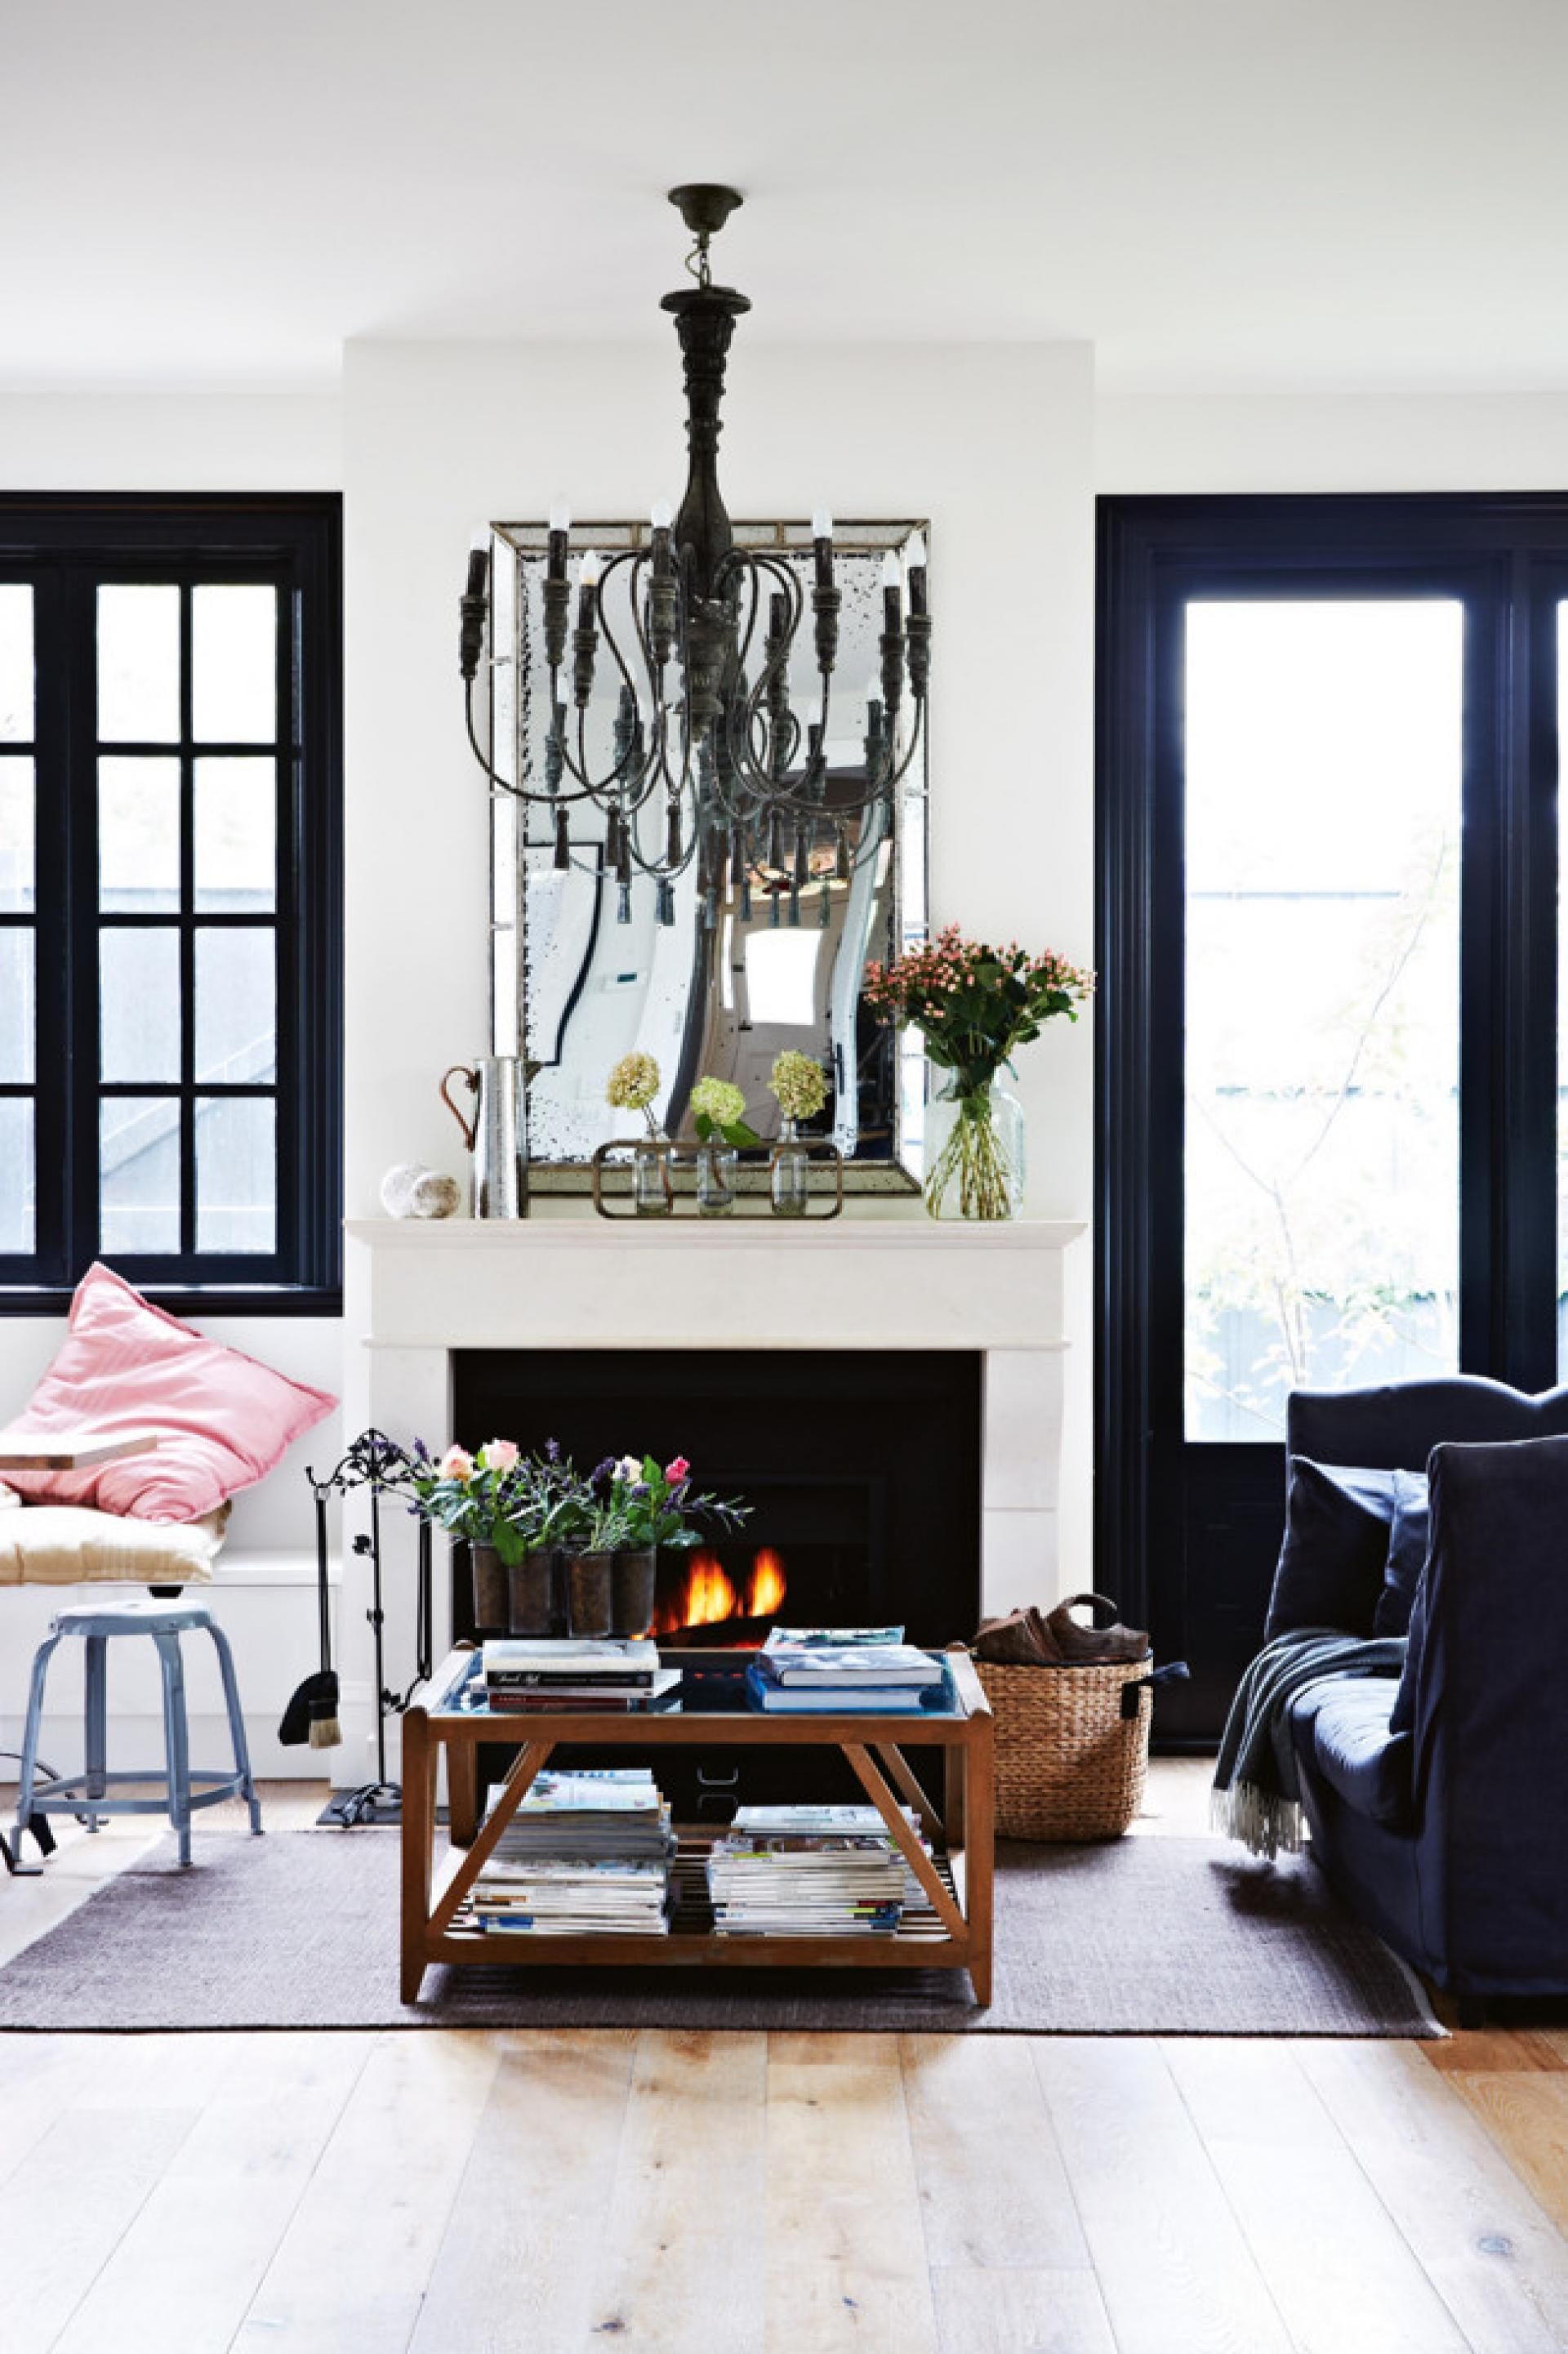 Home inspiration french style living a side of vogue for Home inspiration